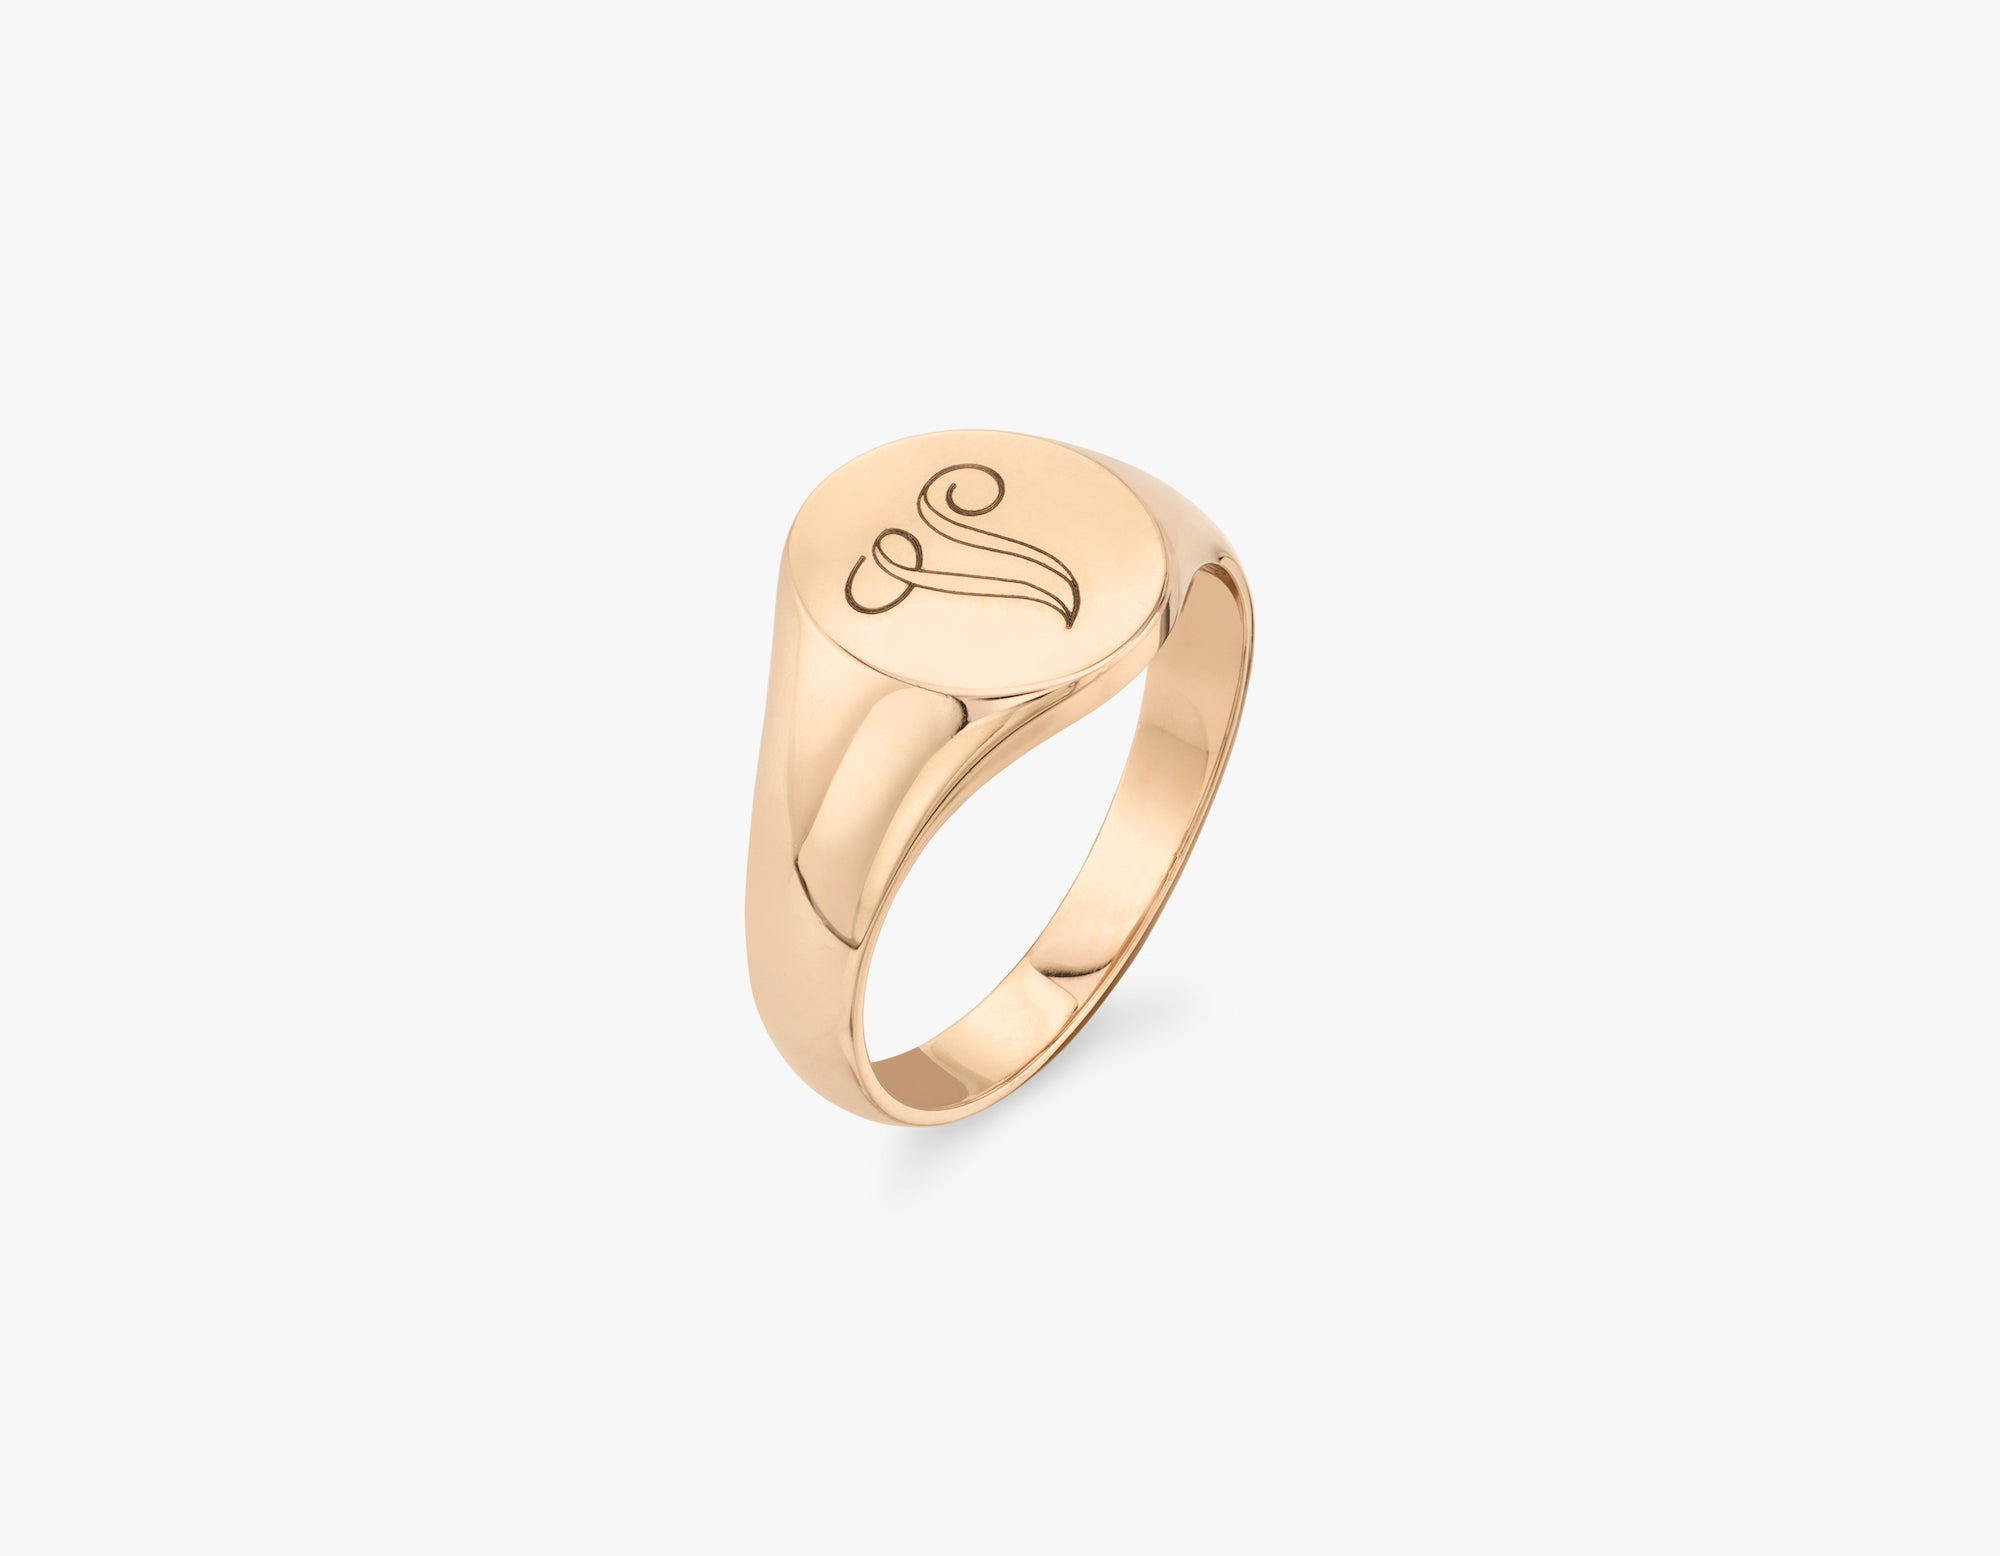 Vrai 14k solid gold classic minimalist engraved Signet Ring, 14K Rose Gold